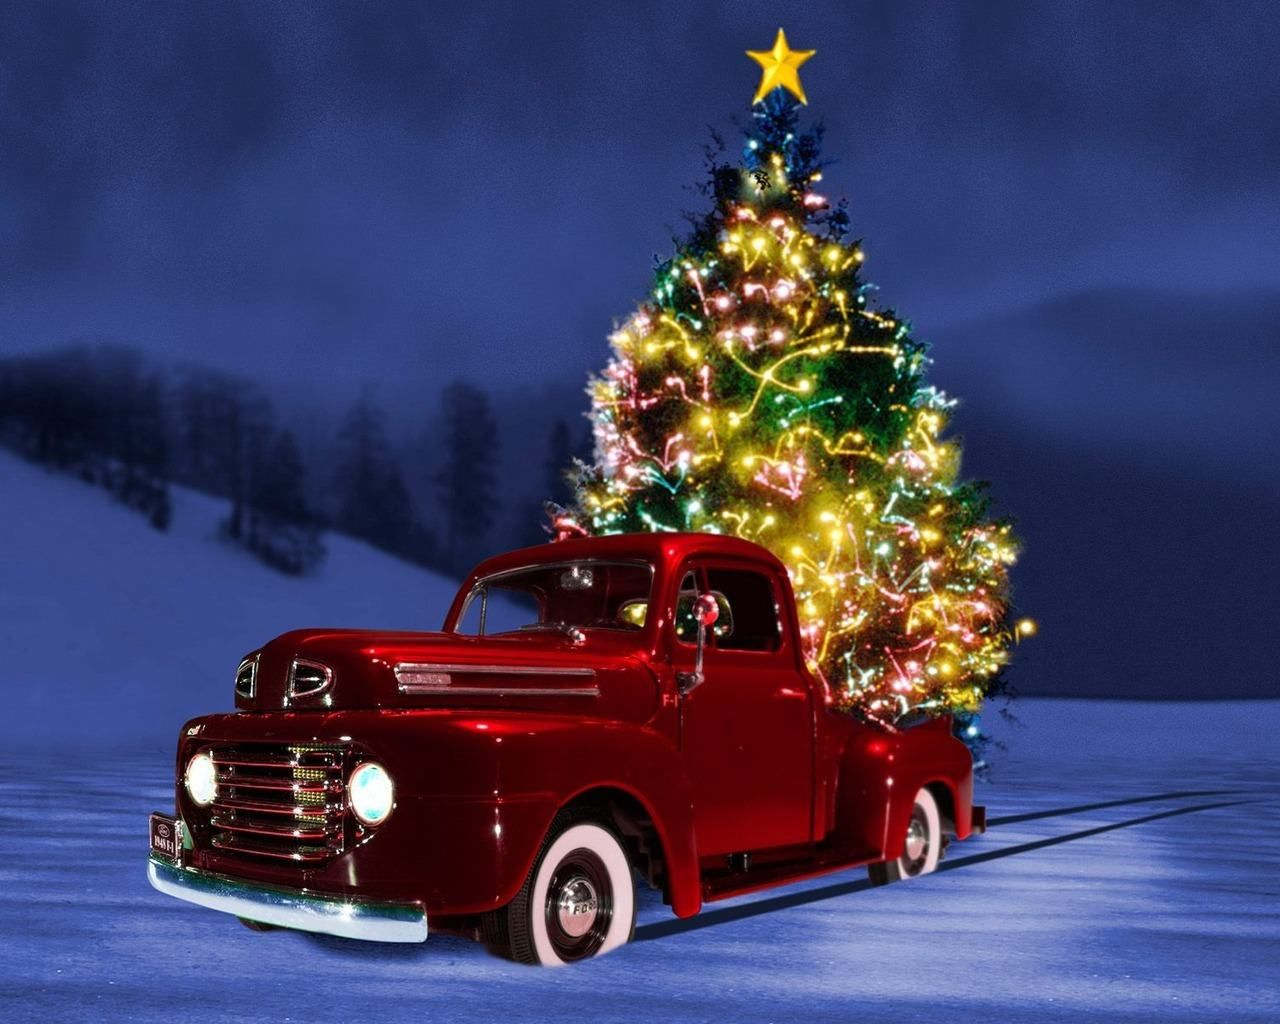 Country Christmas Background Wallpaper.Pin On Holiday Ideas